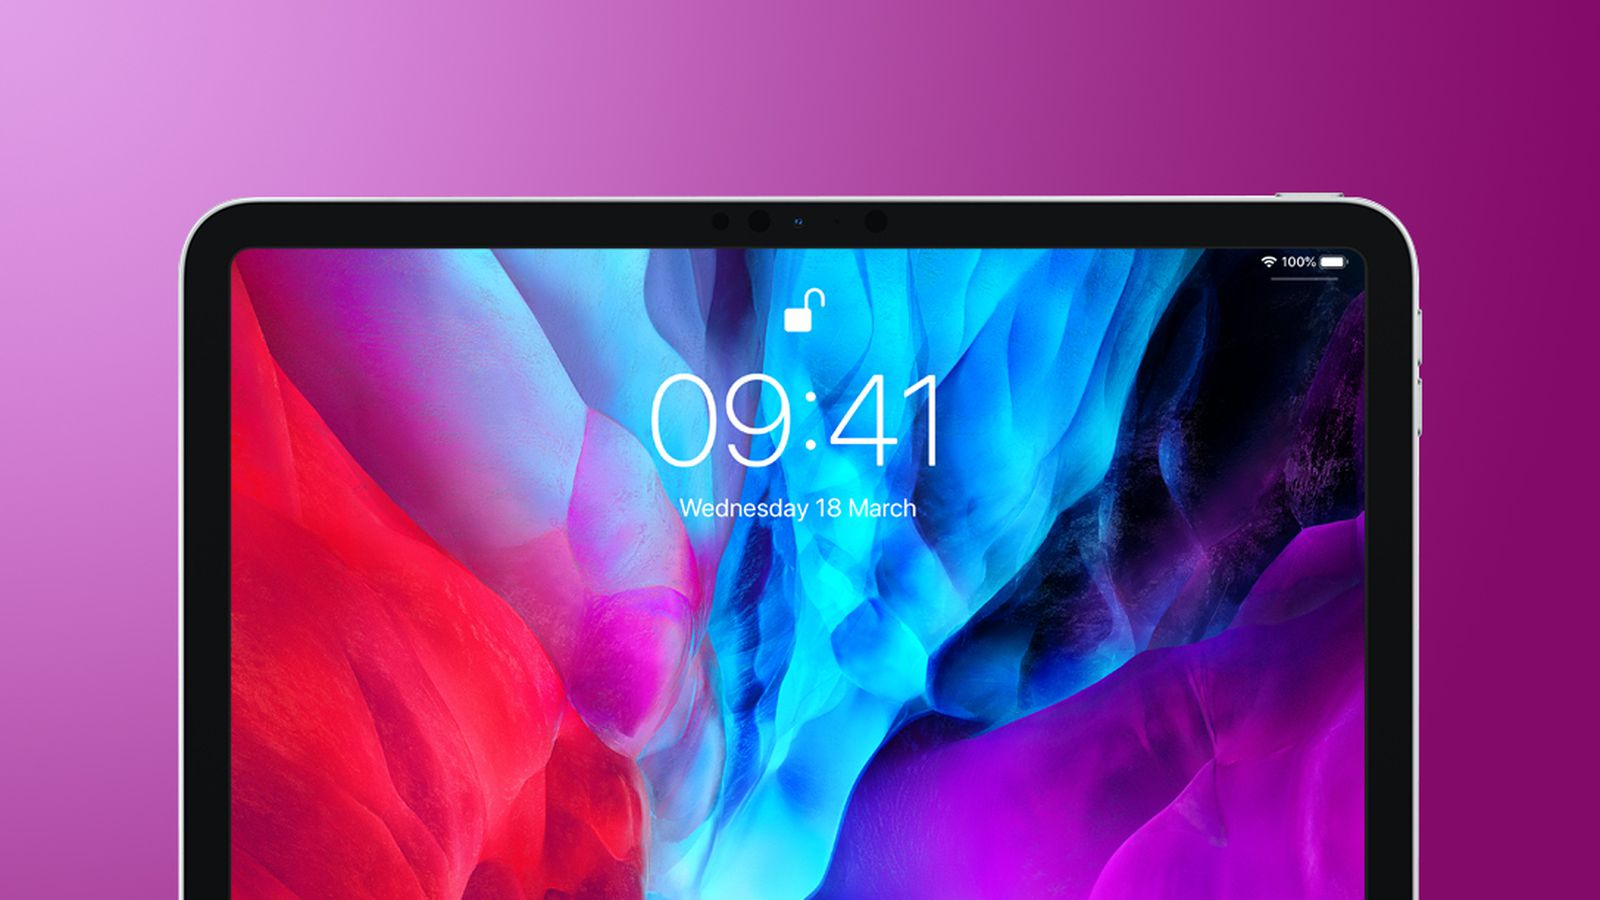 Supposedly, the new iPad Pro will be launched in March, the 12.9-inch model could be a bit thicker for a small LED display